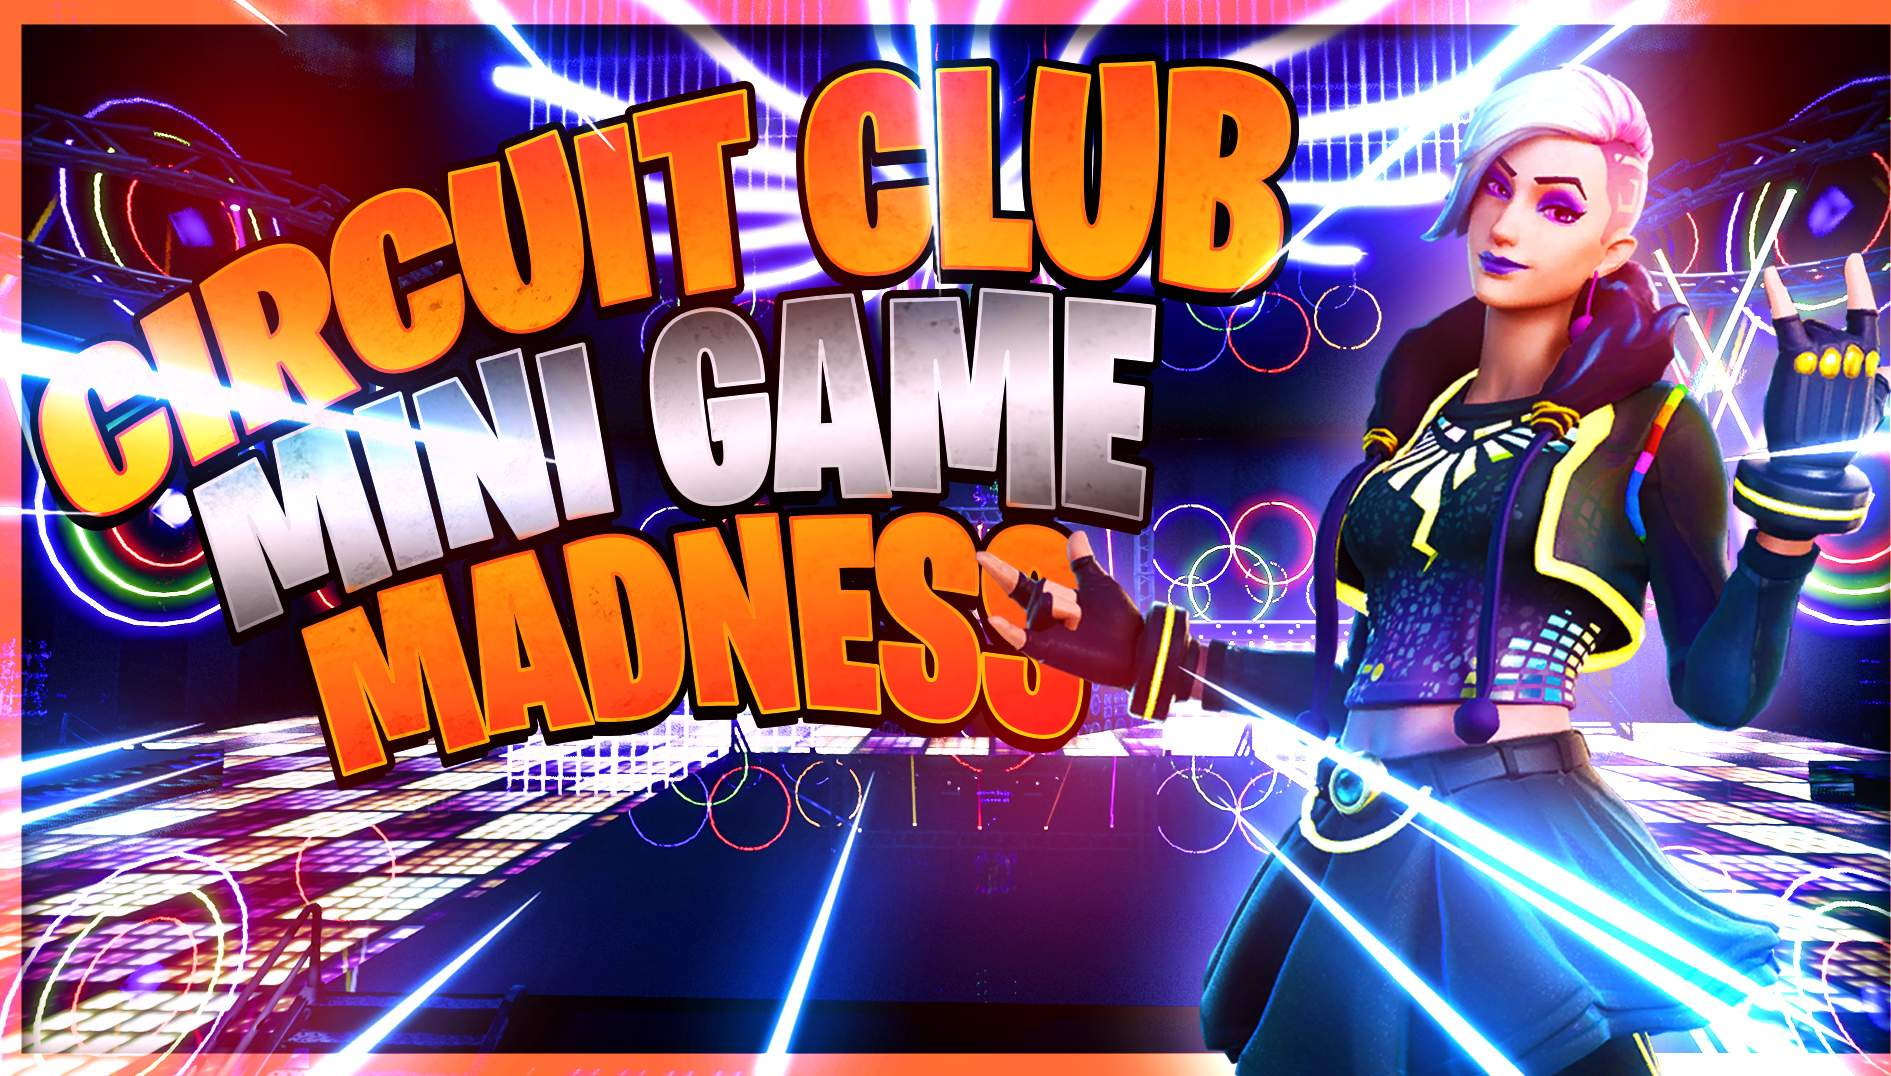 CIRCUIT CLUB: MINI-GAME MADNESS